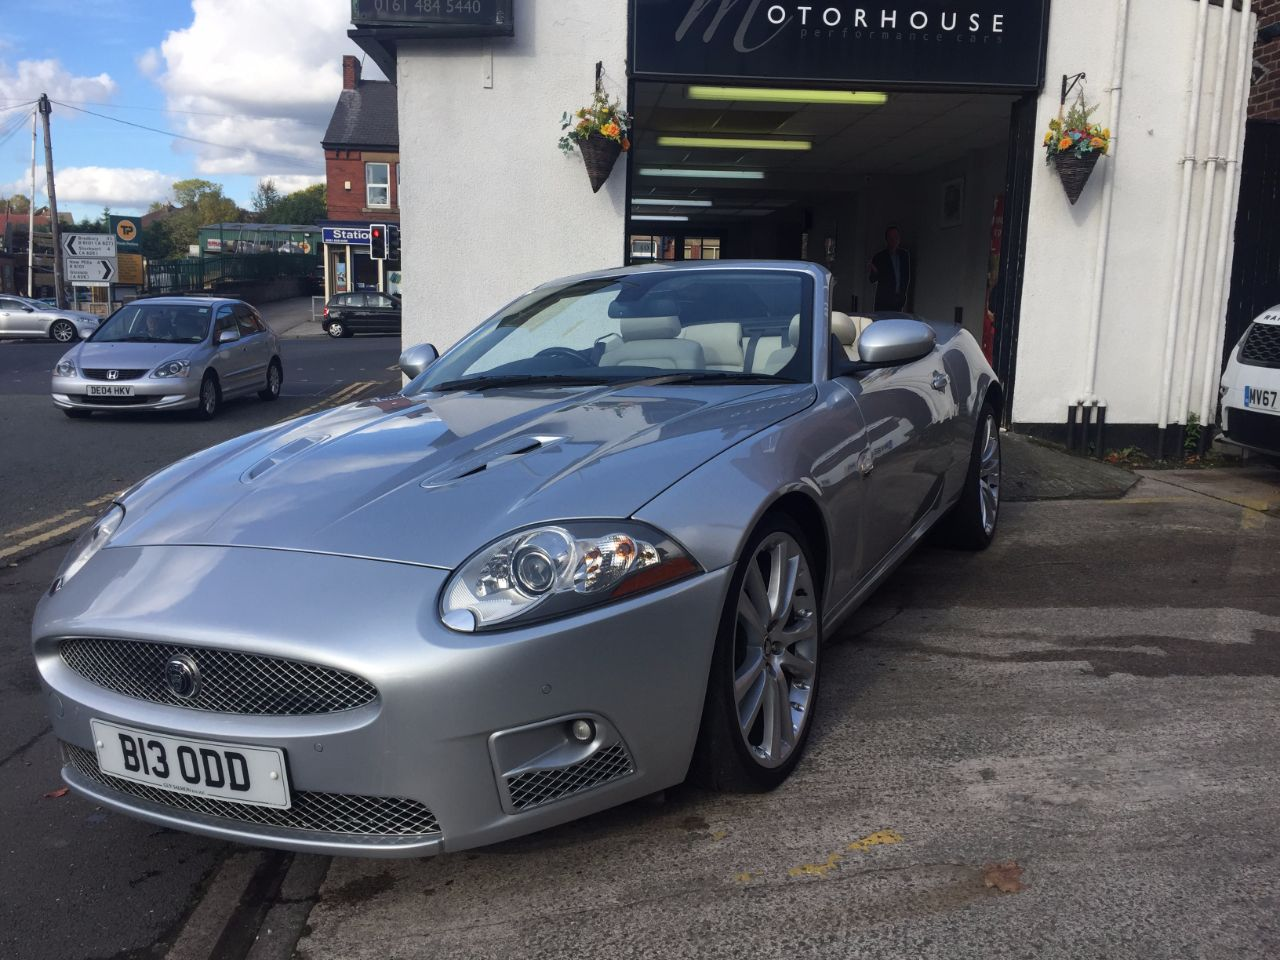 Jaguar Xkr 4.2 Supercharged V8 2dr Auto Convertible Petrol Silver at Motorhouse Cheshire Stockport